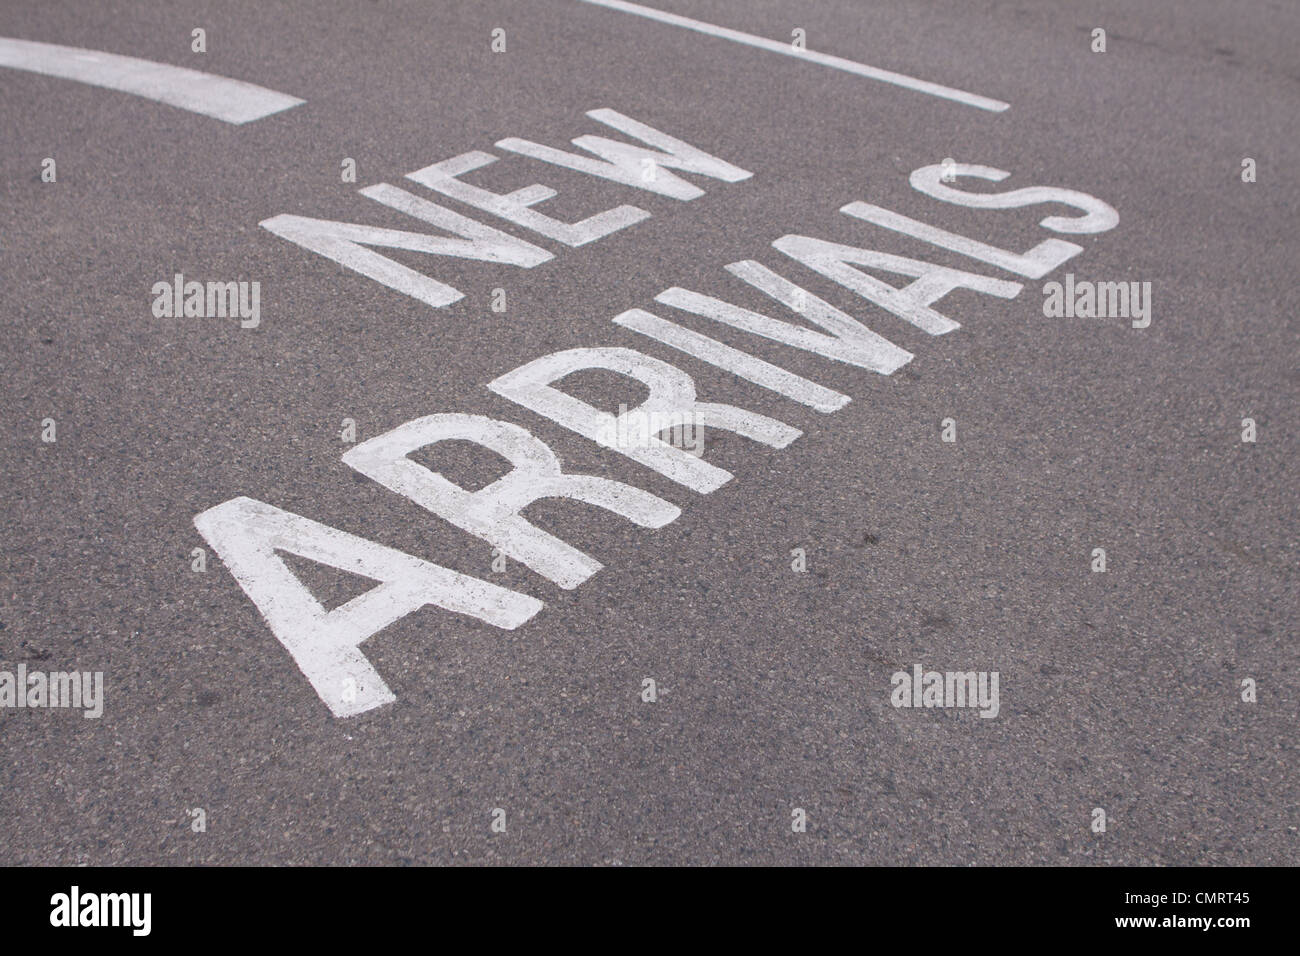 New arrivals road marking at the entrance to a camp site in the UK. - Stock Image